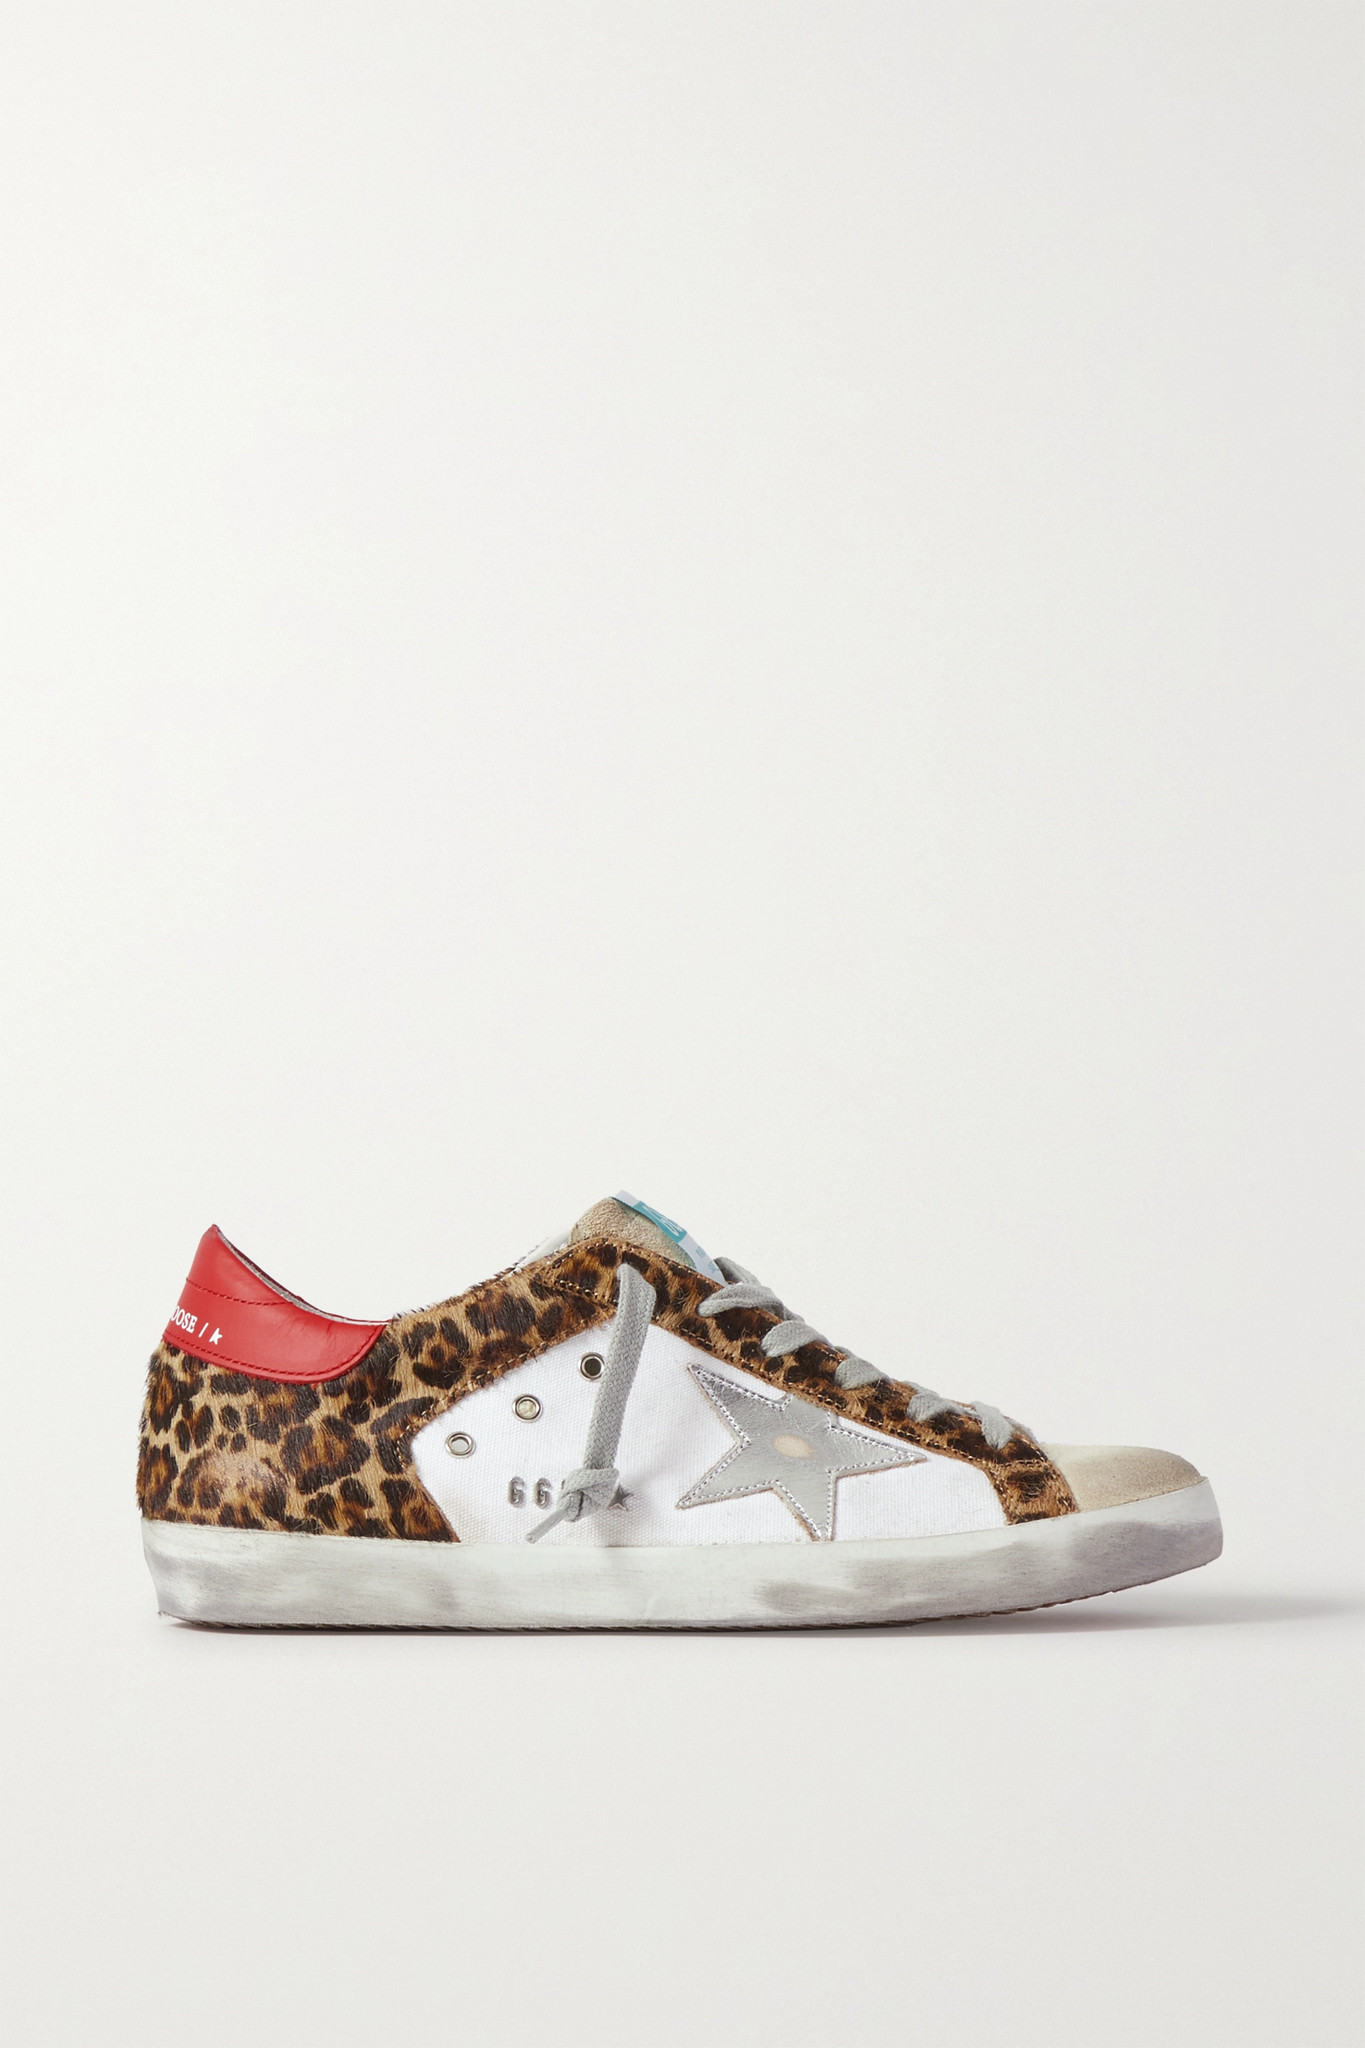 GOLDEN GOOSE - Superstar Distressed Leopard-print Calf Hair, Leather And Suede Sneakers - White - IT